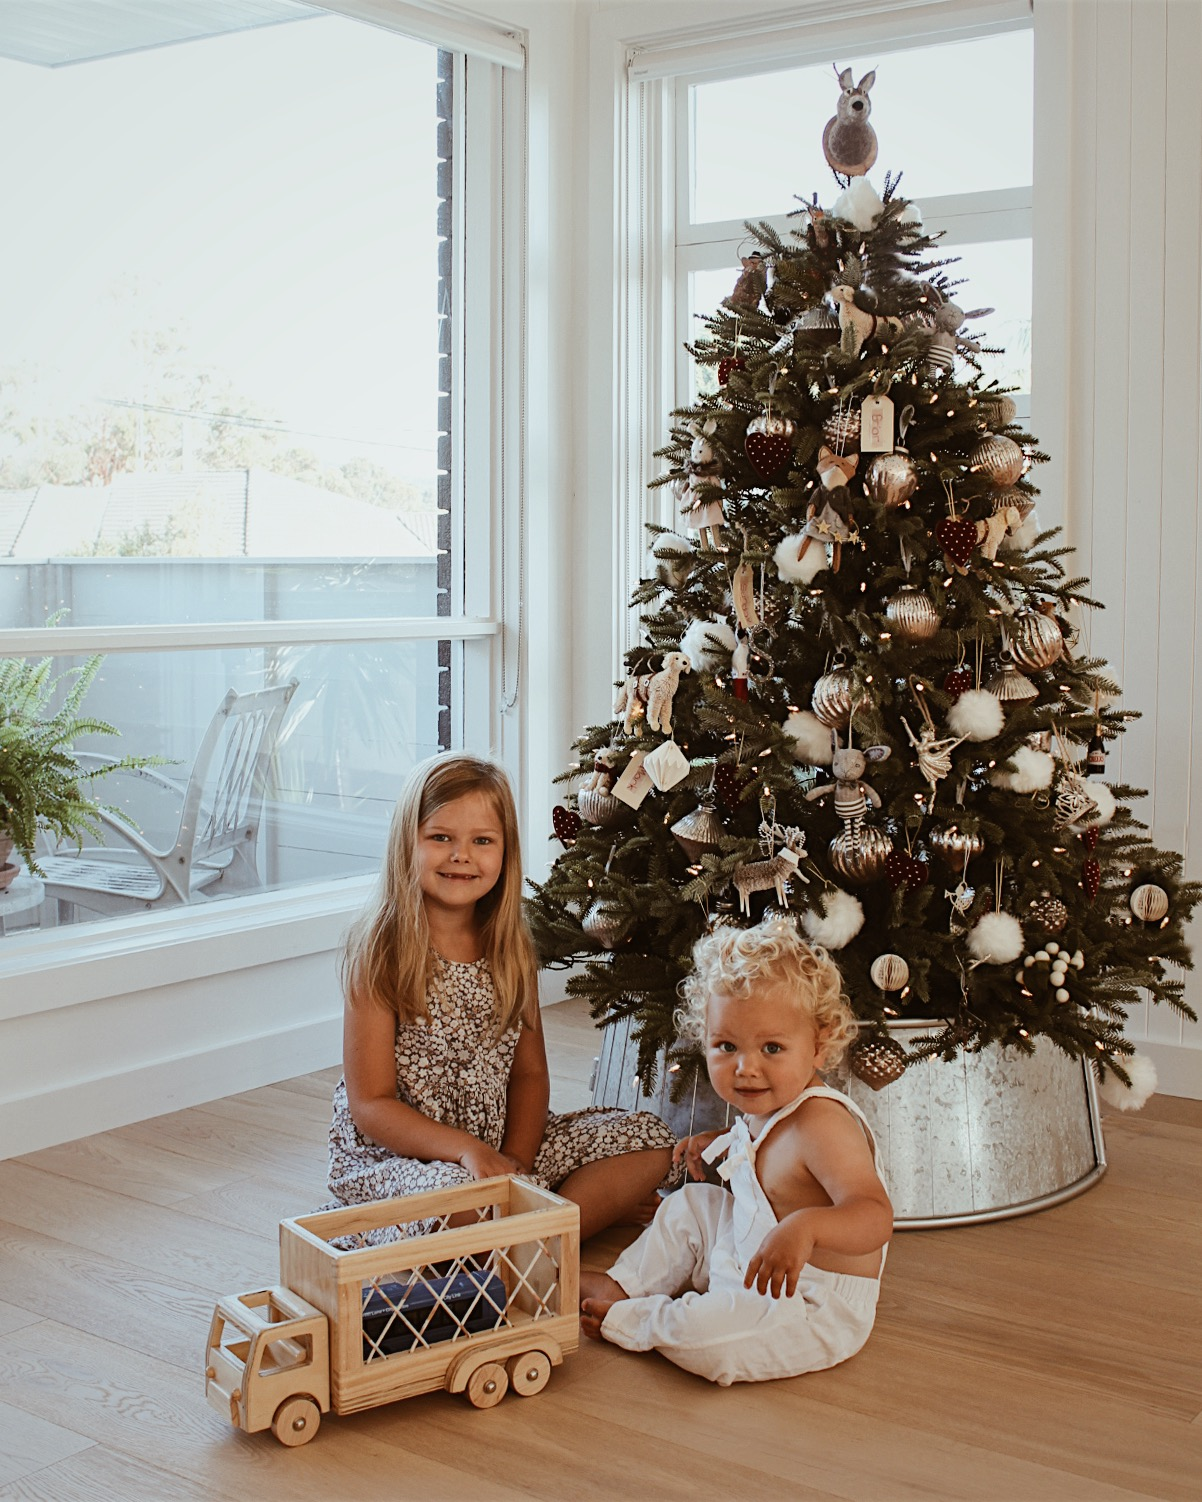 Where To Buy Balsam Hill Christmas Trees: Christmas Tree Decorating Ideas